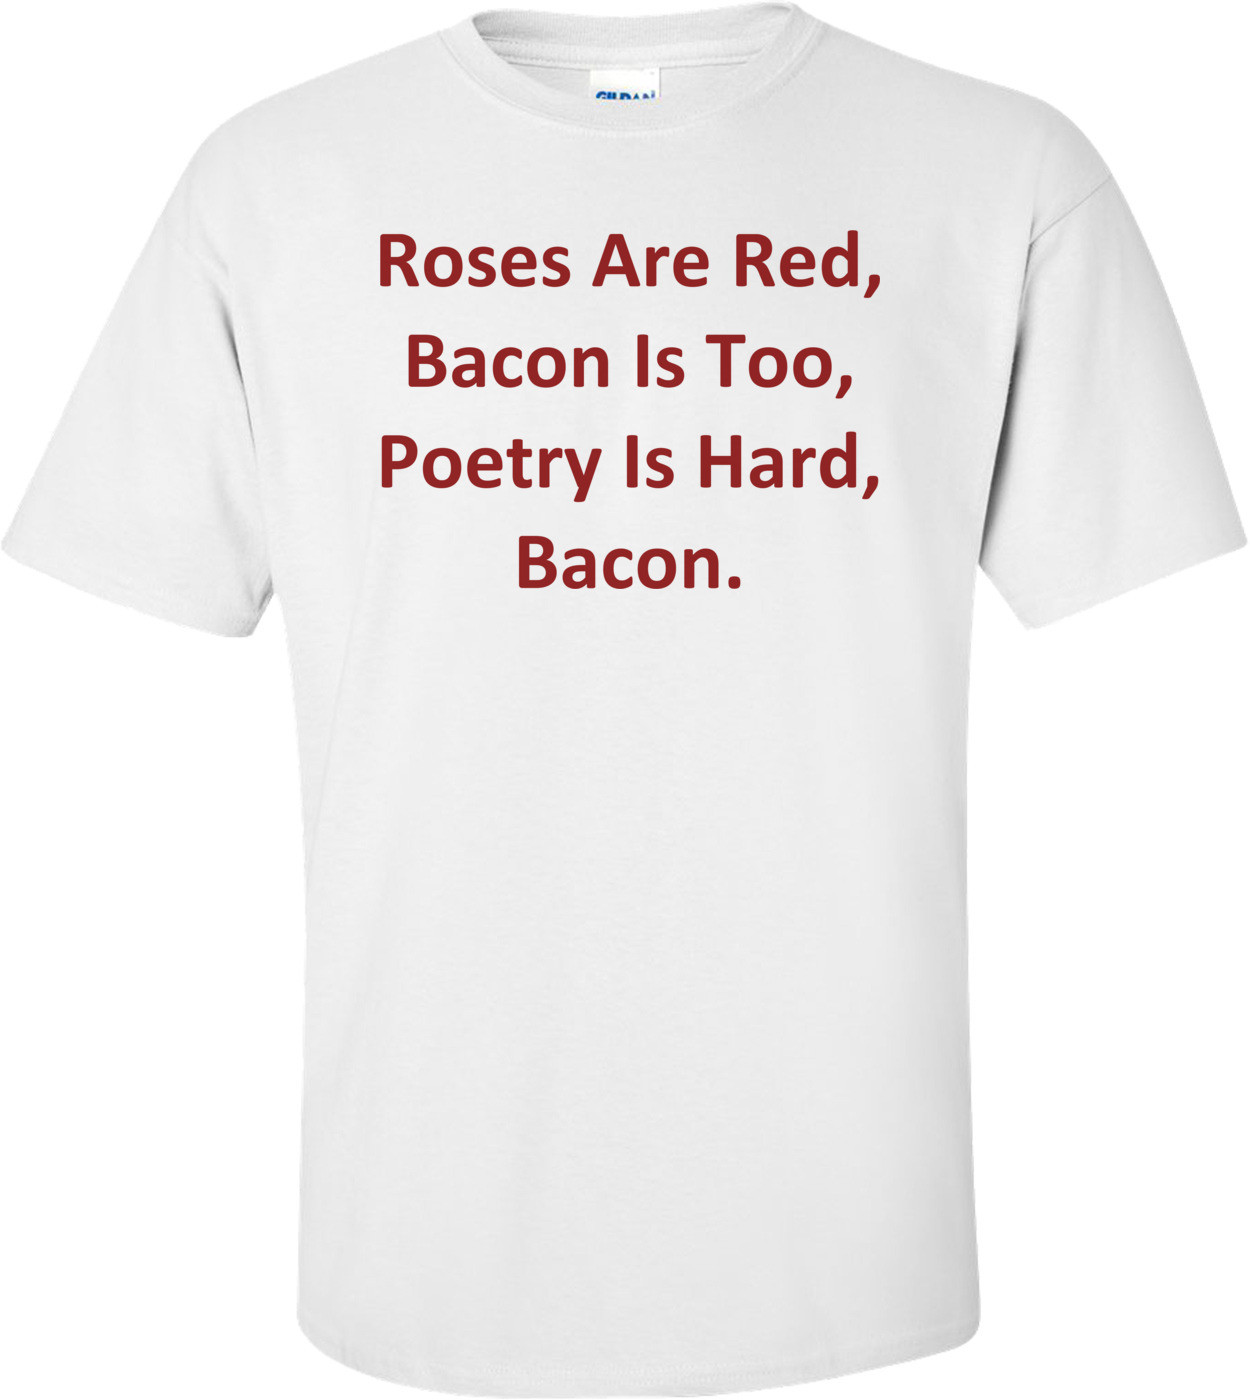 Roses Are Red, Bacon Is Too, Poetry Is Hard, Bacon. Shirt